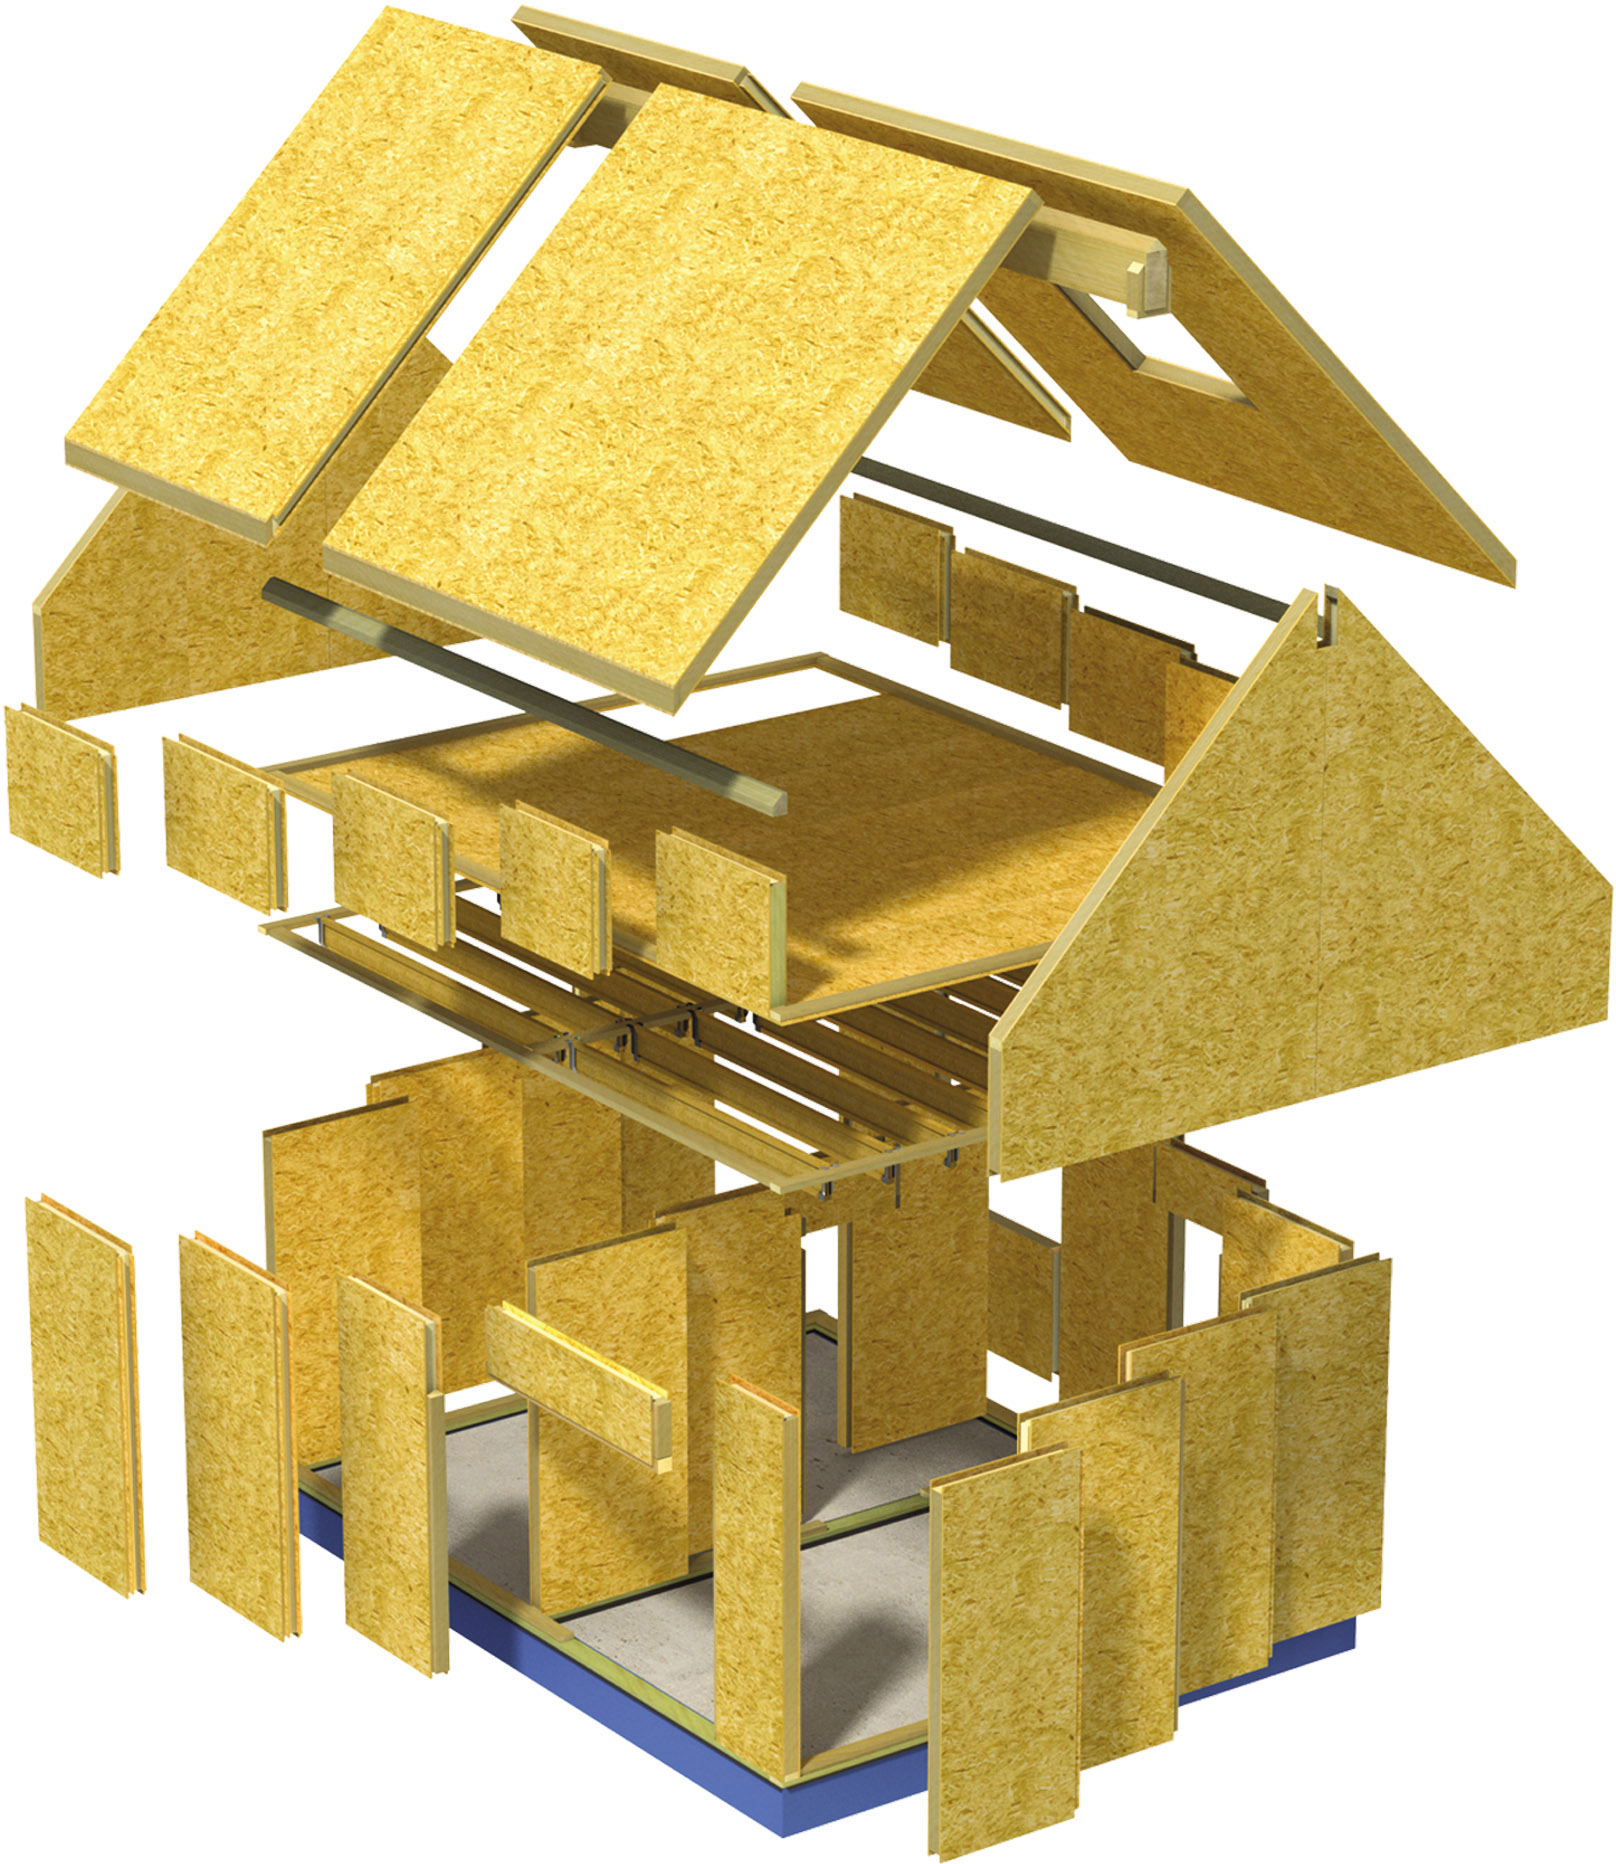 Exploded view of a SIPs house in component form.